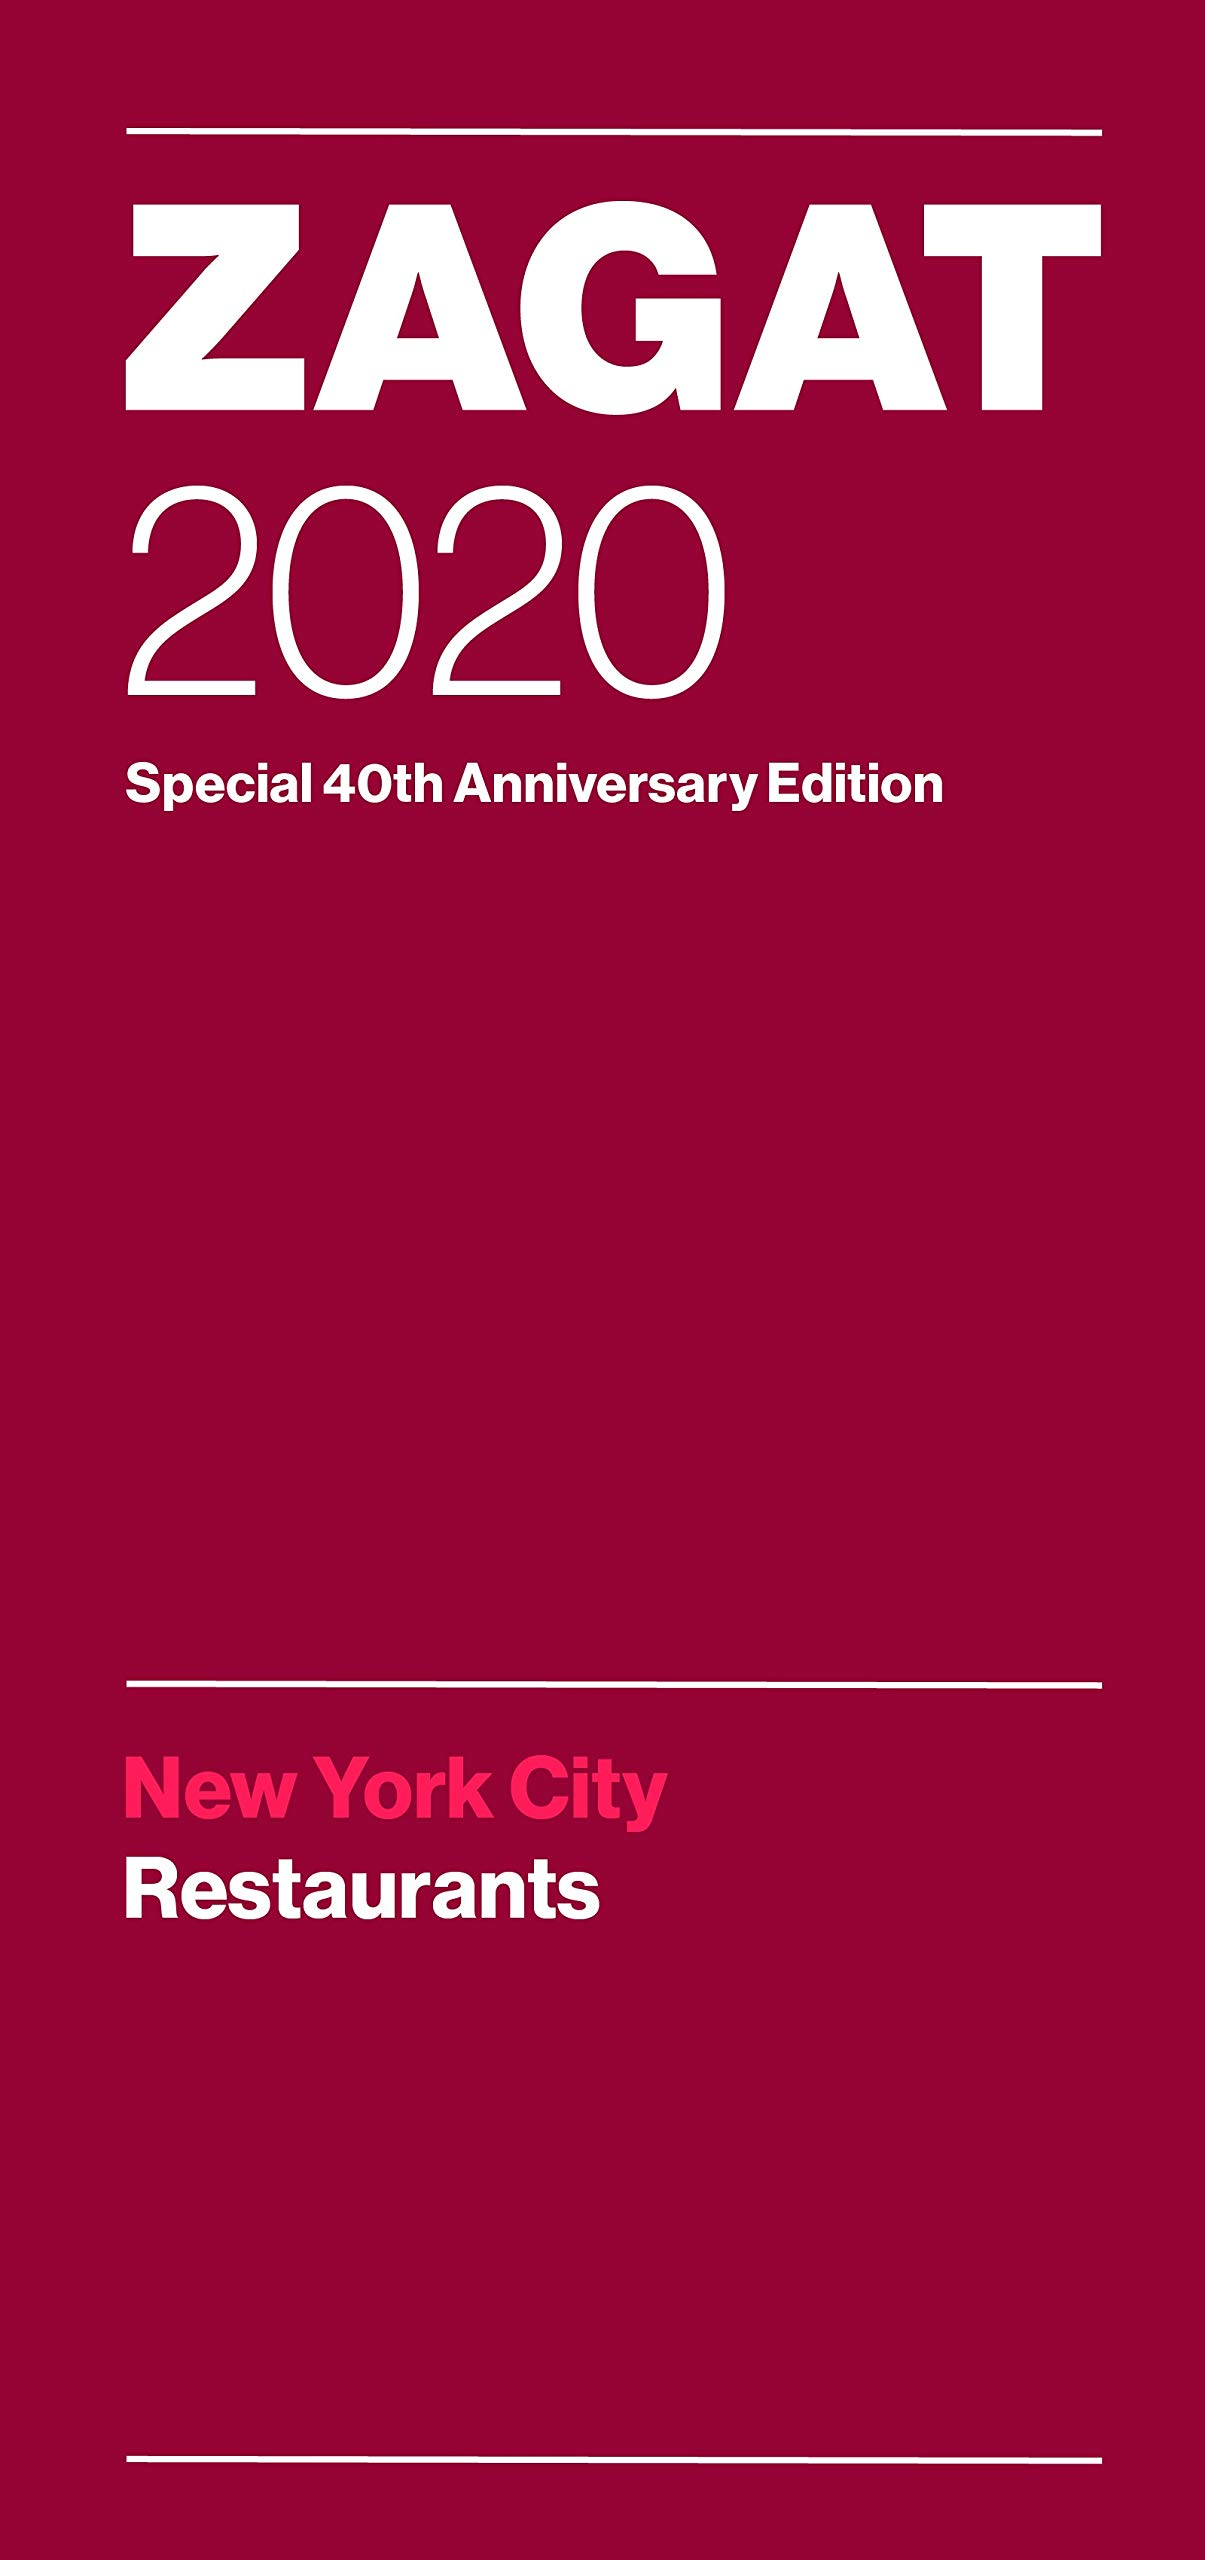 Best Nyc Restaurants 2020 Zagat 2020 New York City Restaurants: Special 40th Anniversary